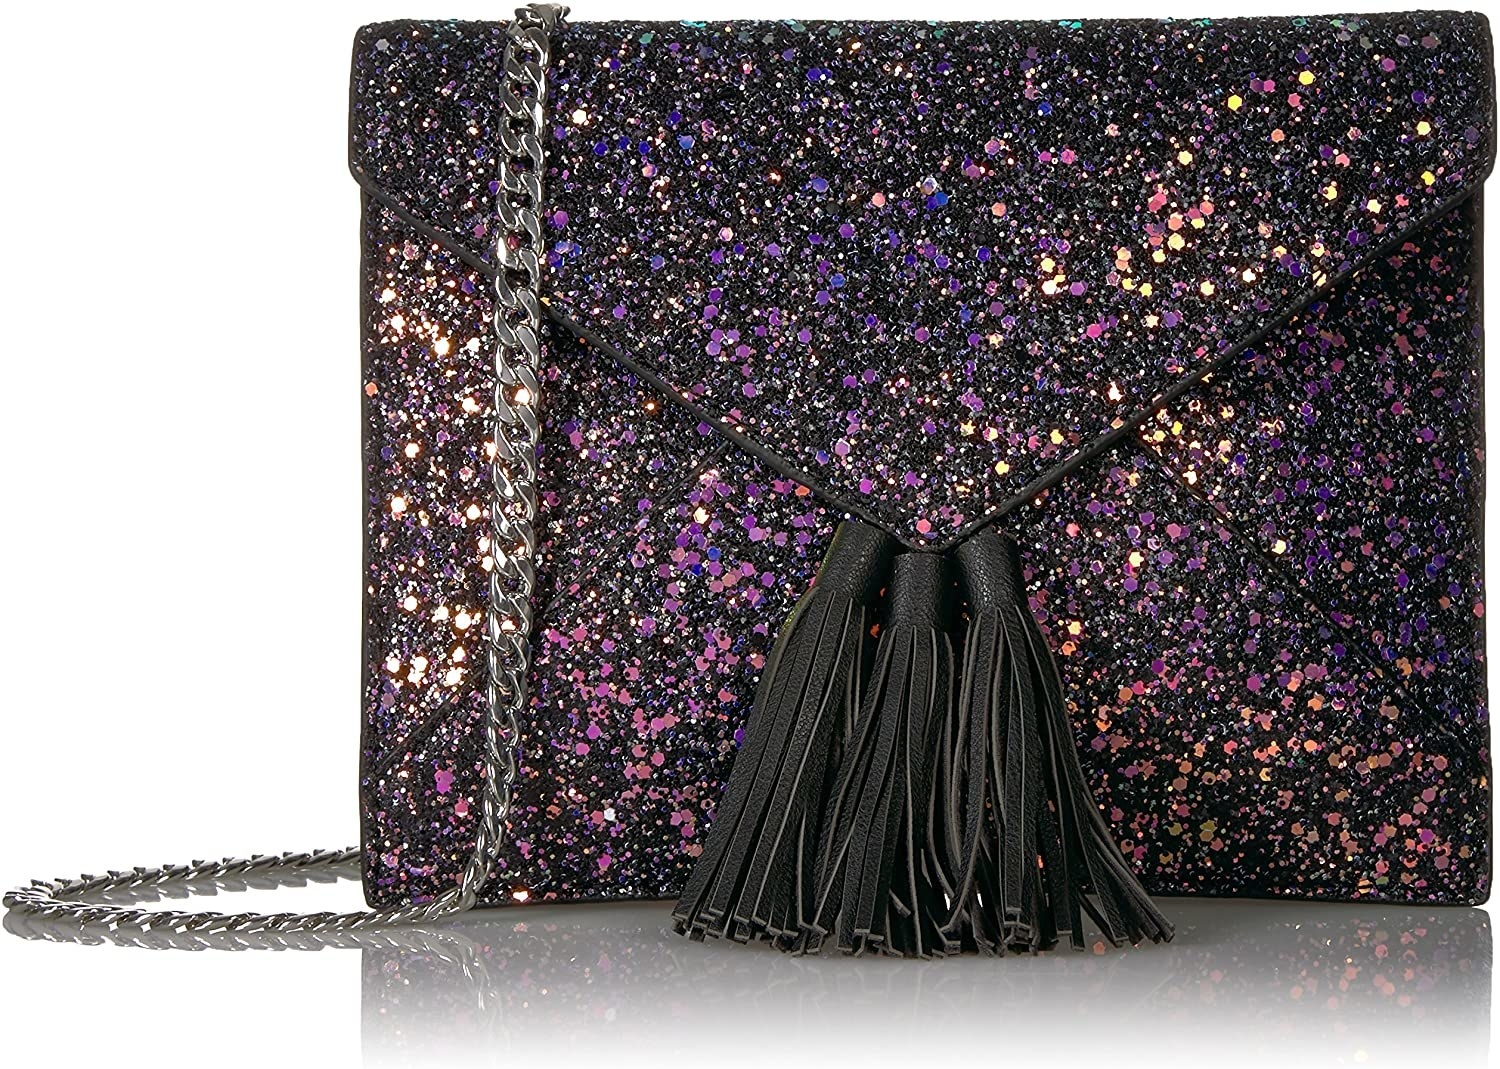 The black and purple clutch with tassels and and a chain strap